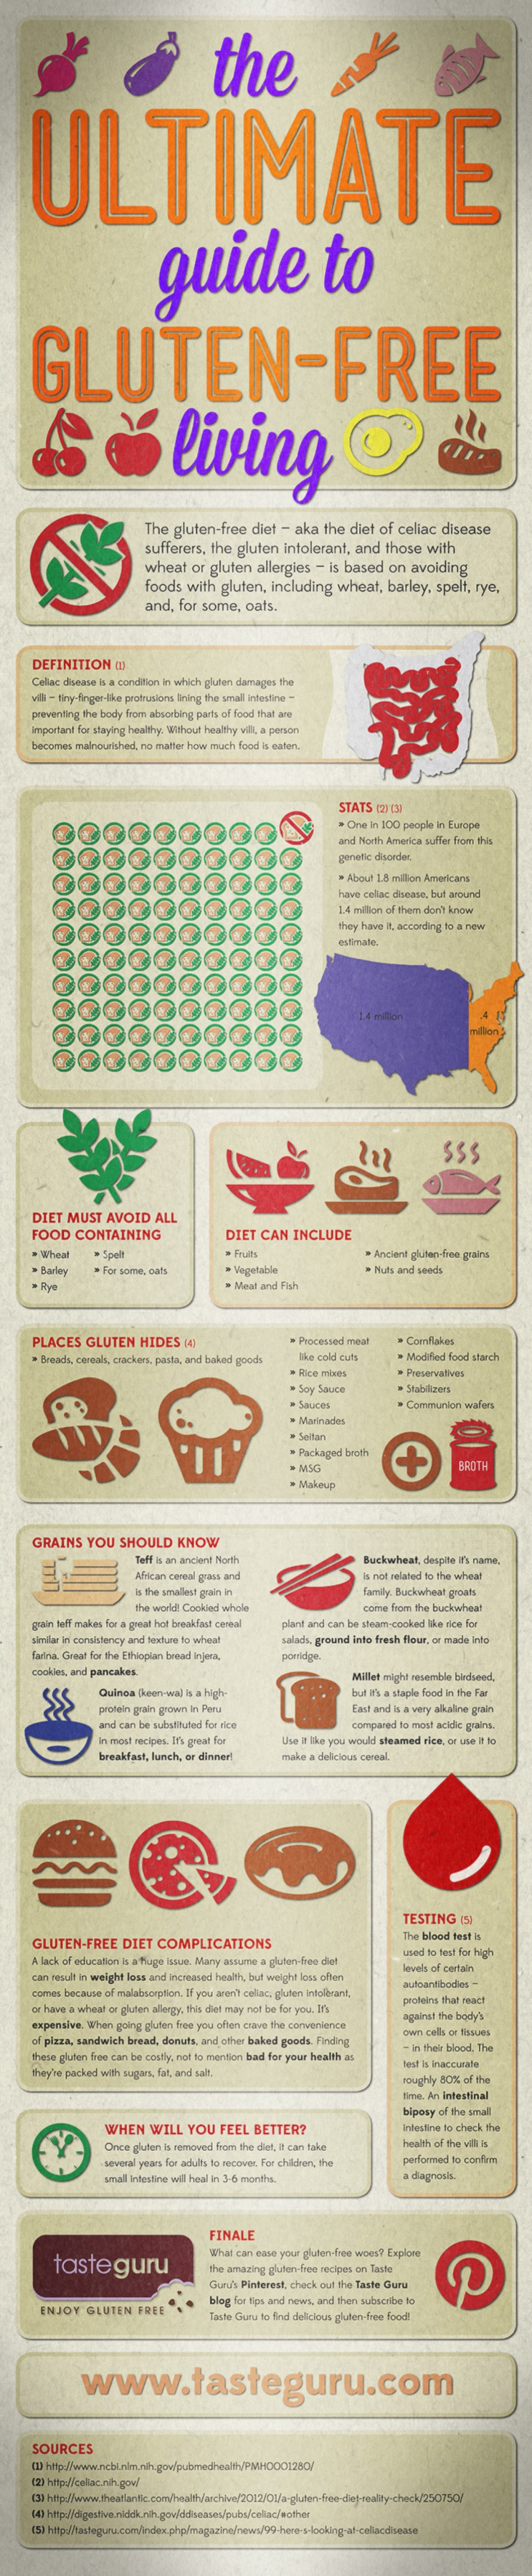 How to Live a Gluten-Free Life - Infographic